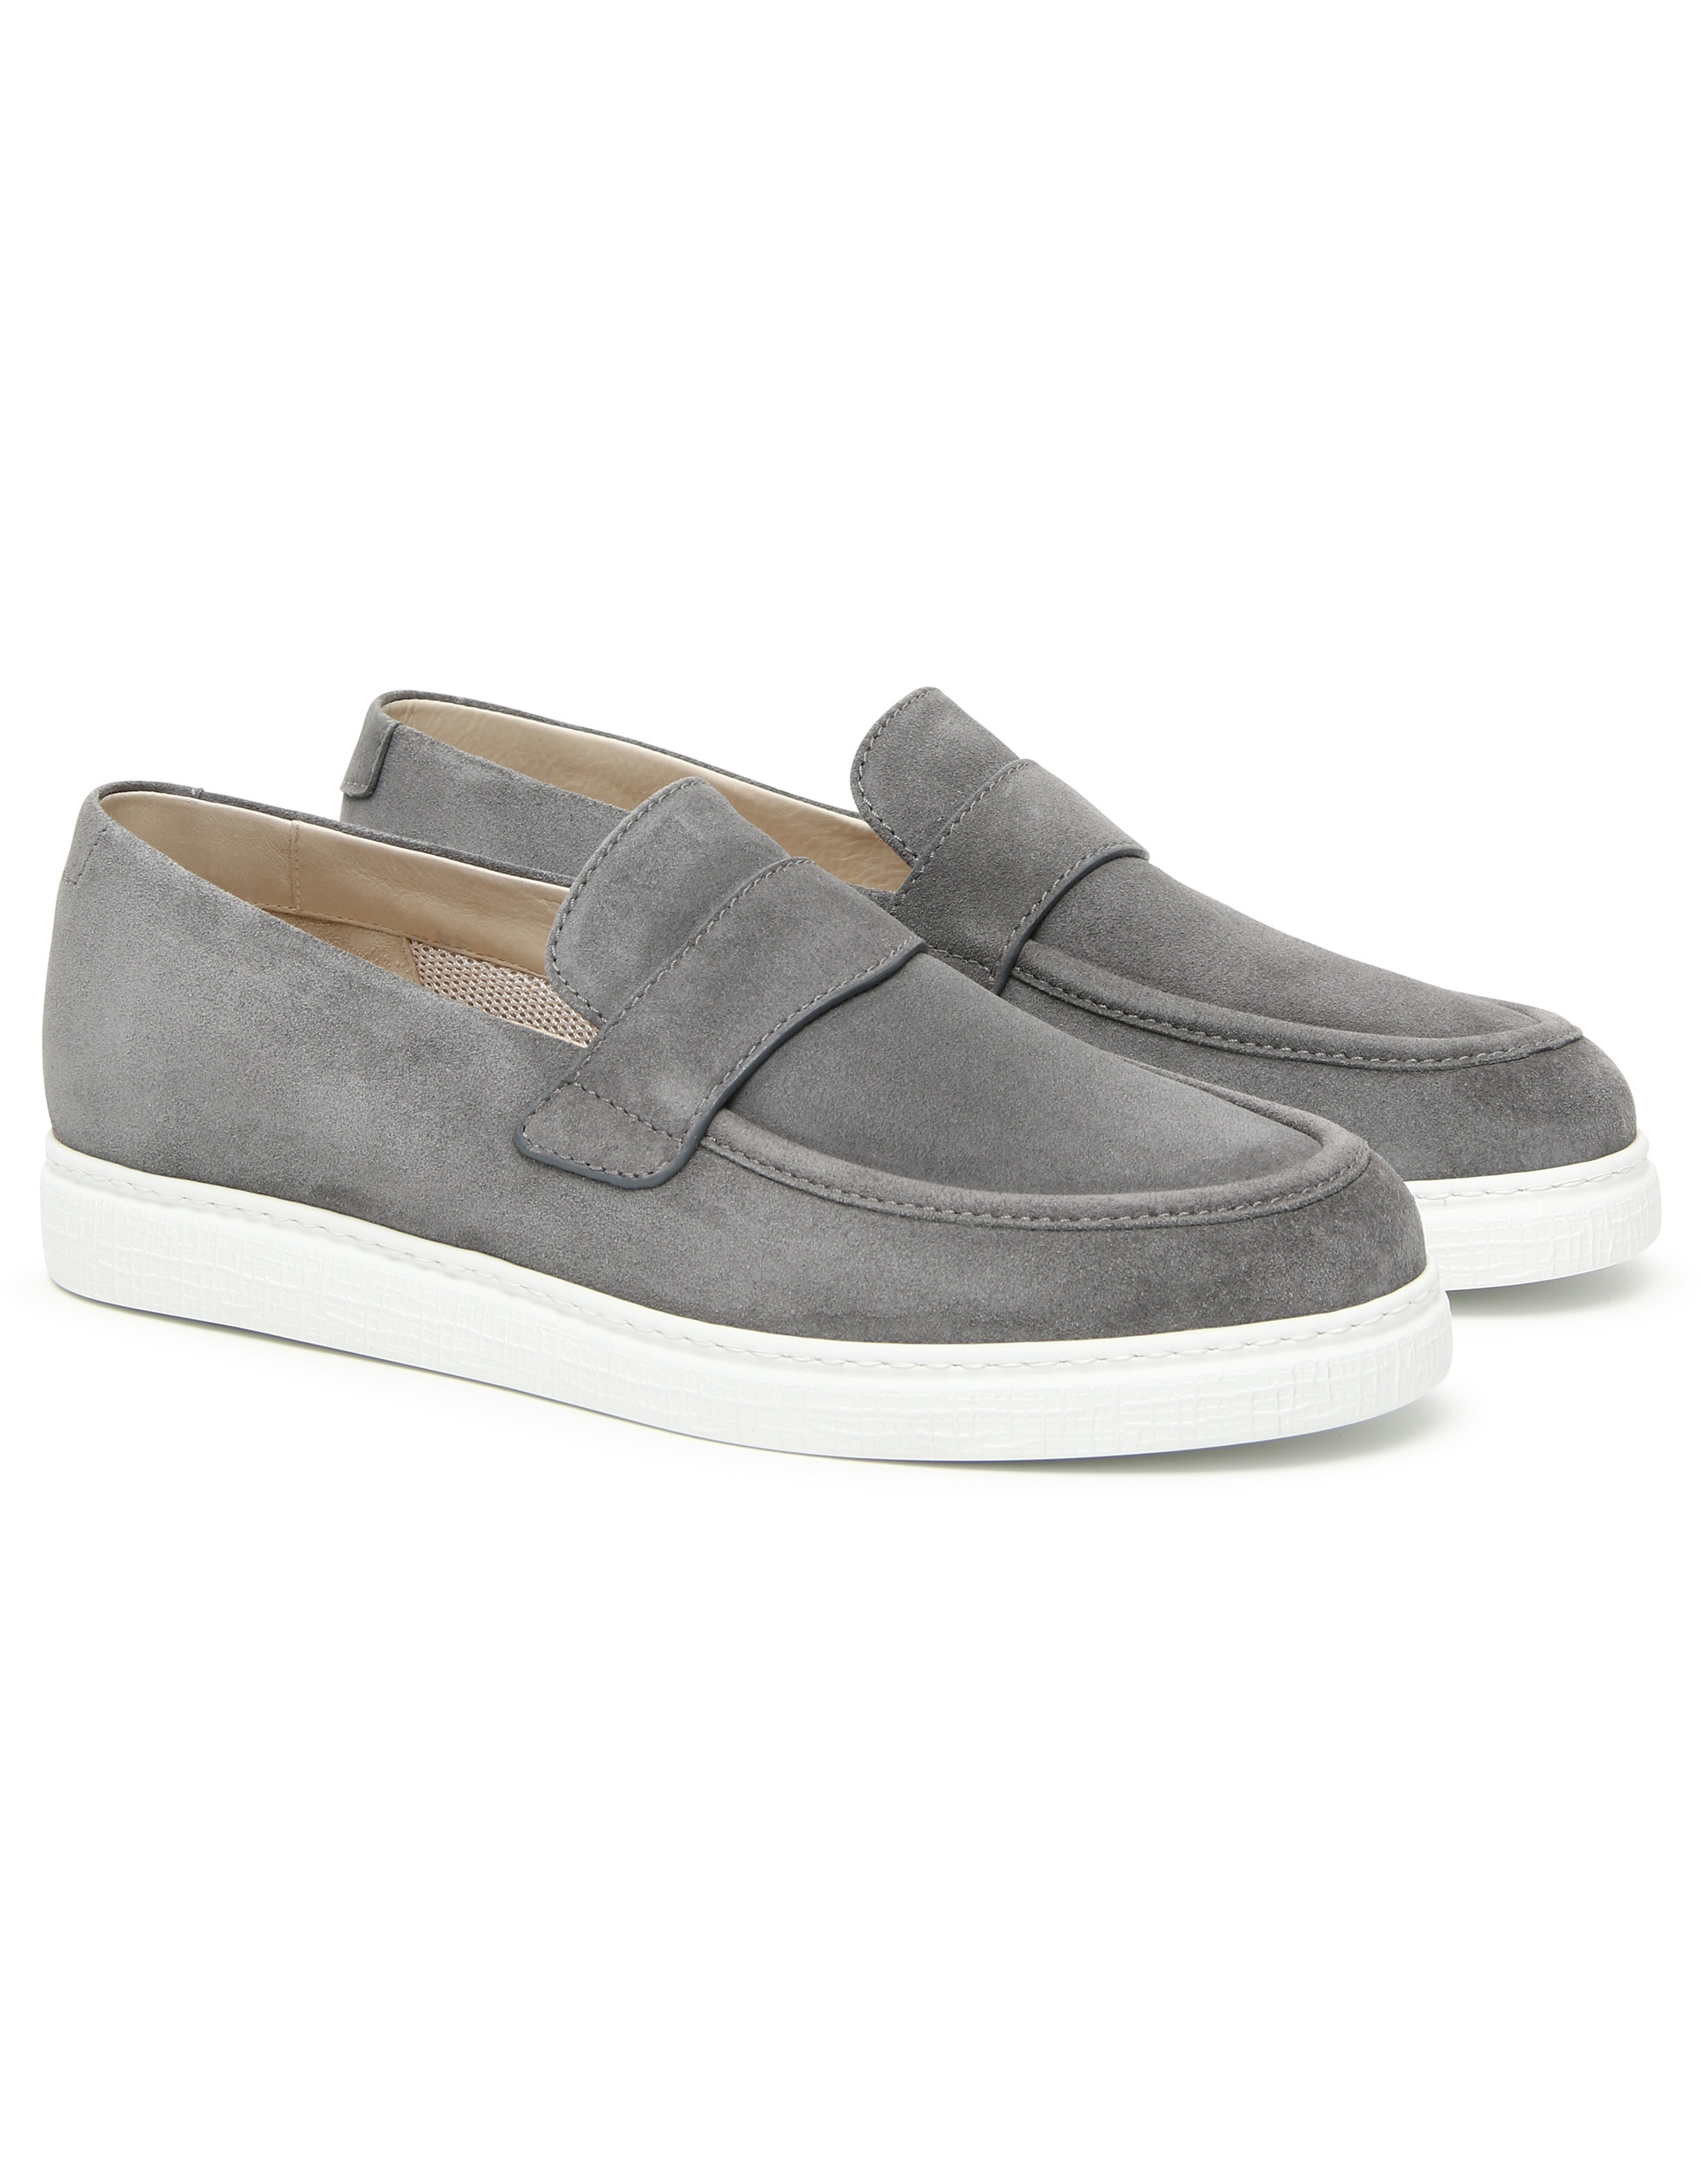 GRAY SUEDE SLIP ON SNEAKERS